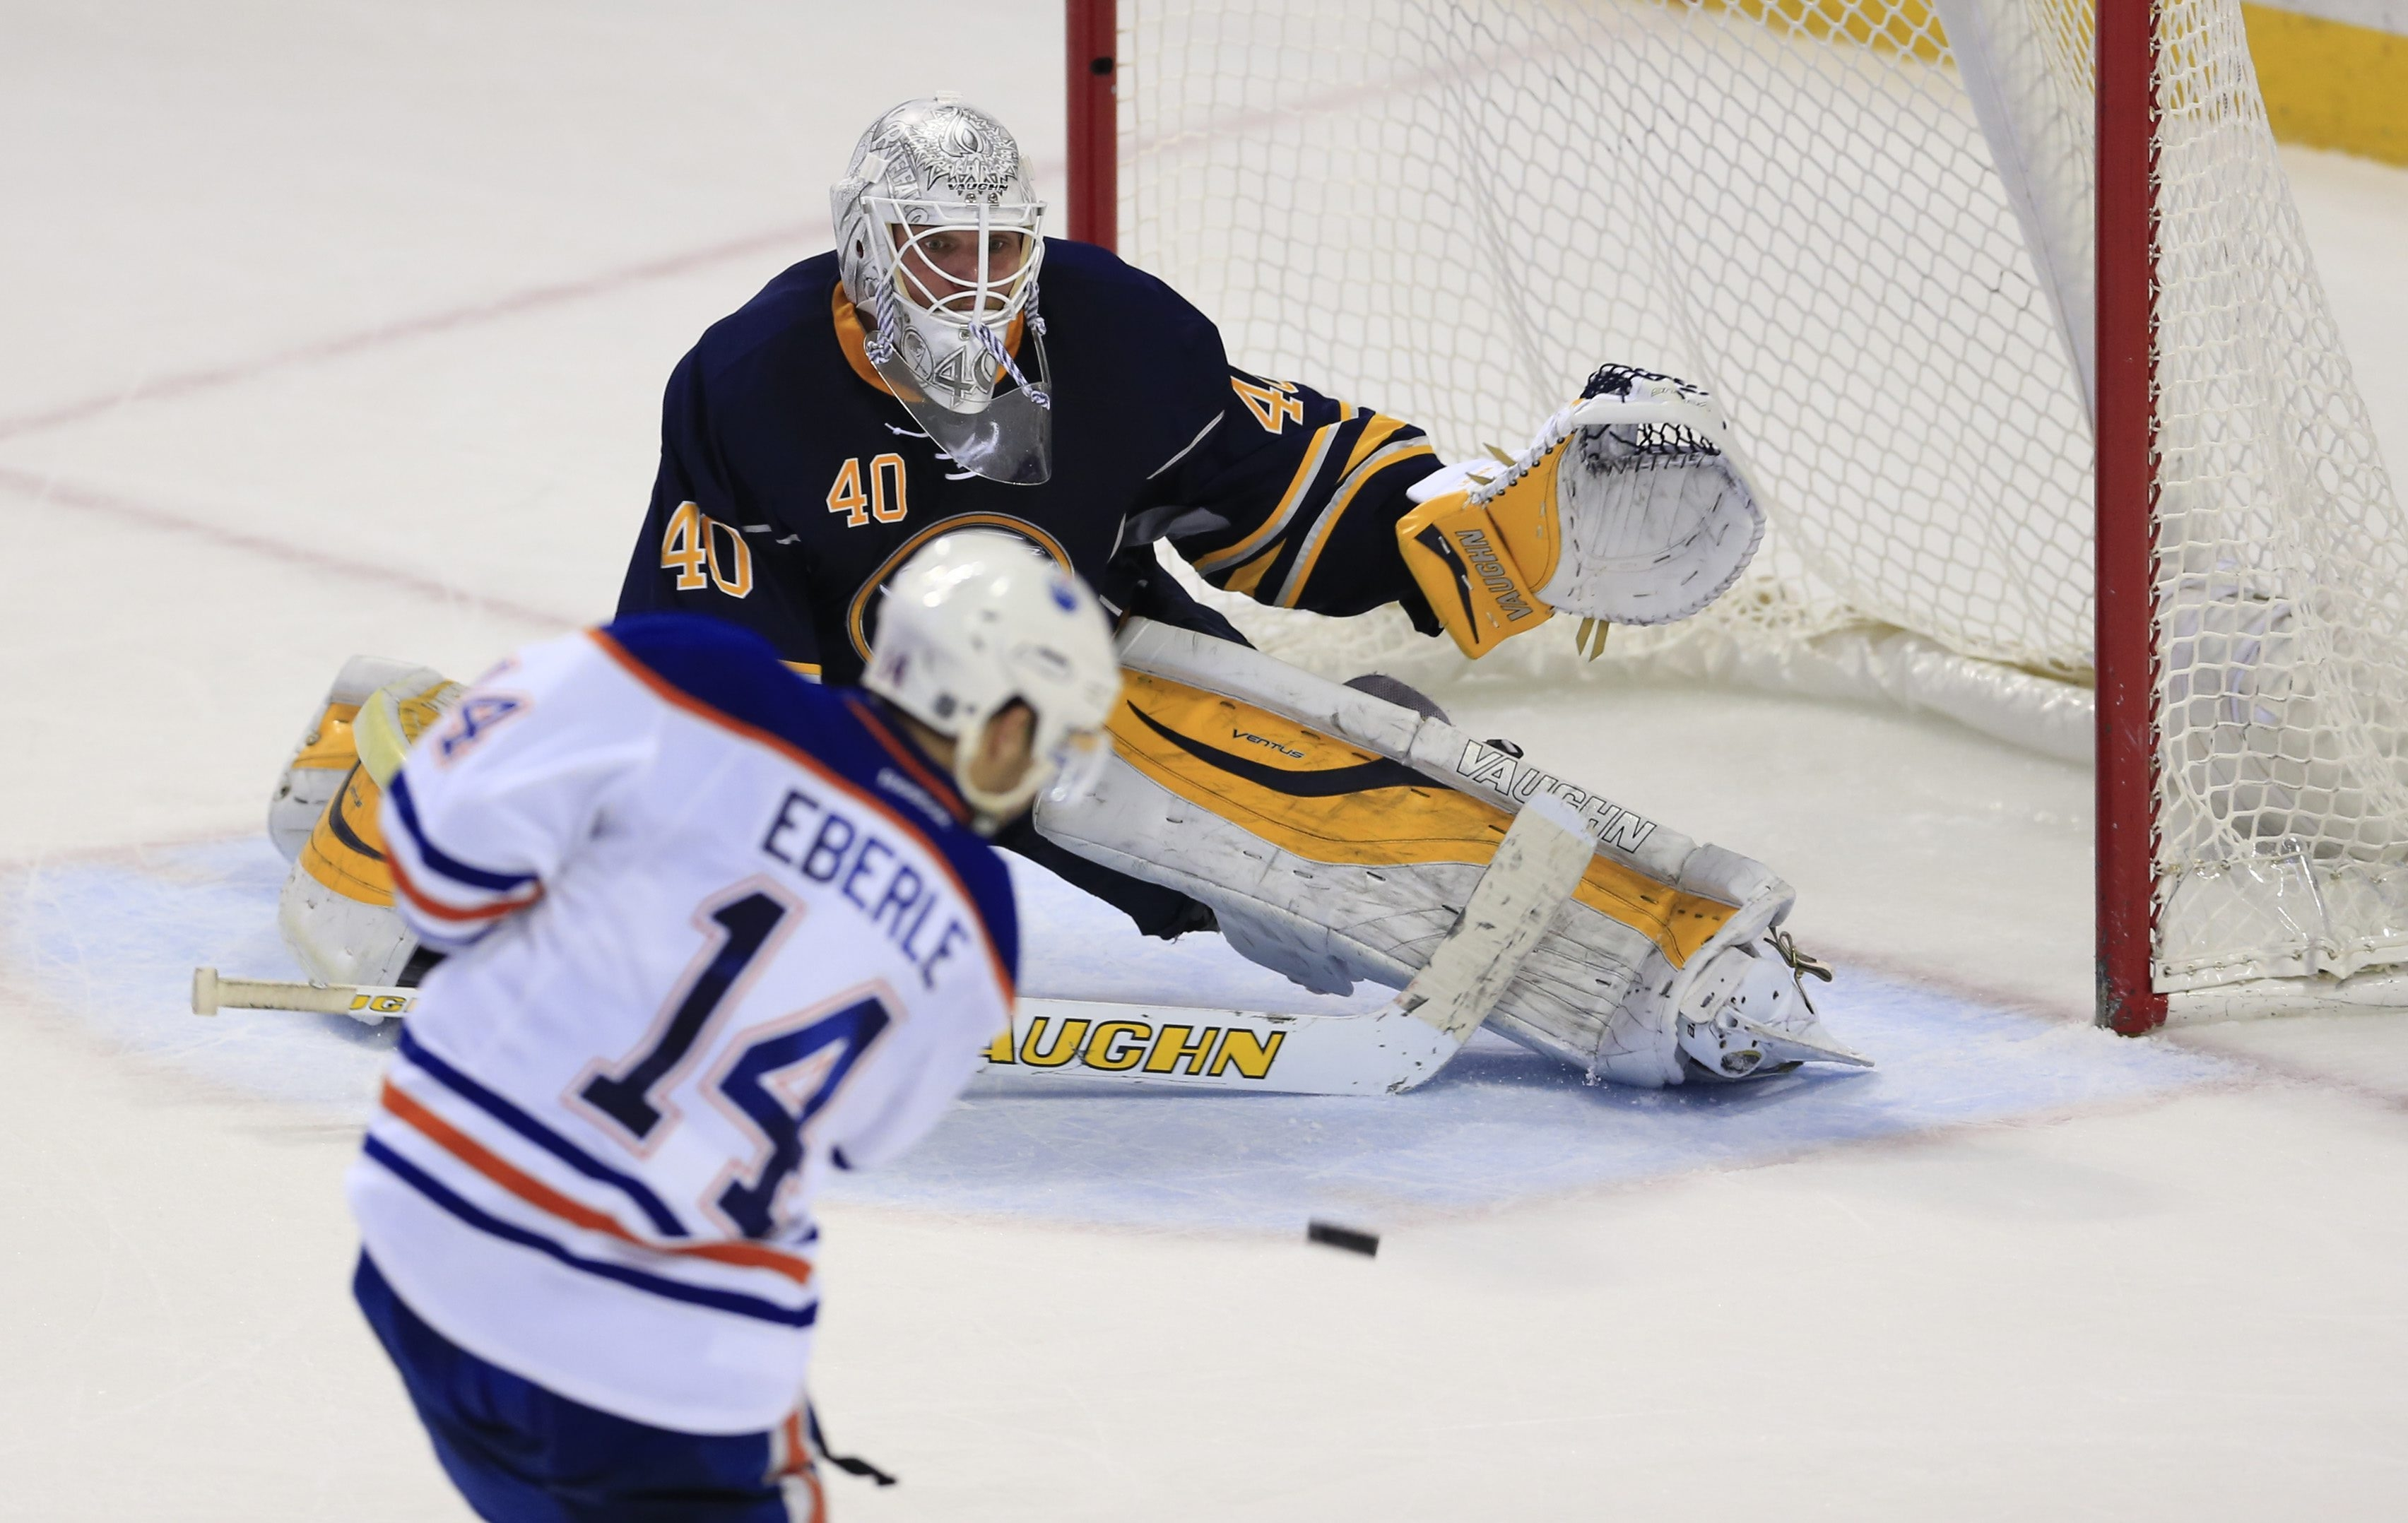 Sabres' goaltender Robin Lehner stops the Oiler's Jordan Eberle's shot during overtime on Tuesday.